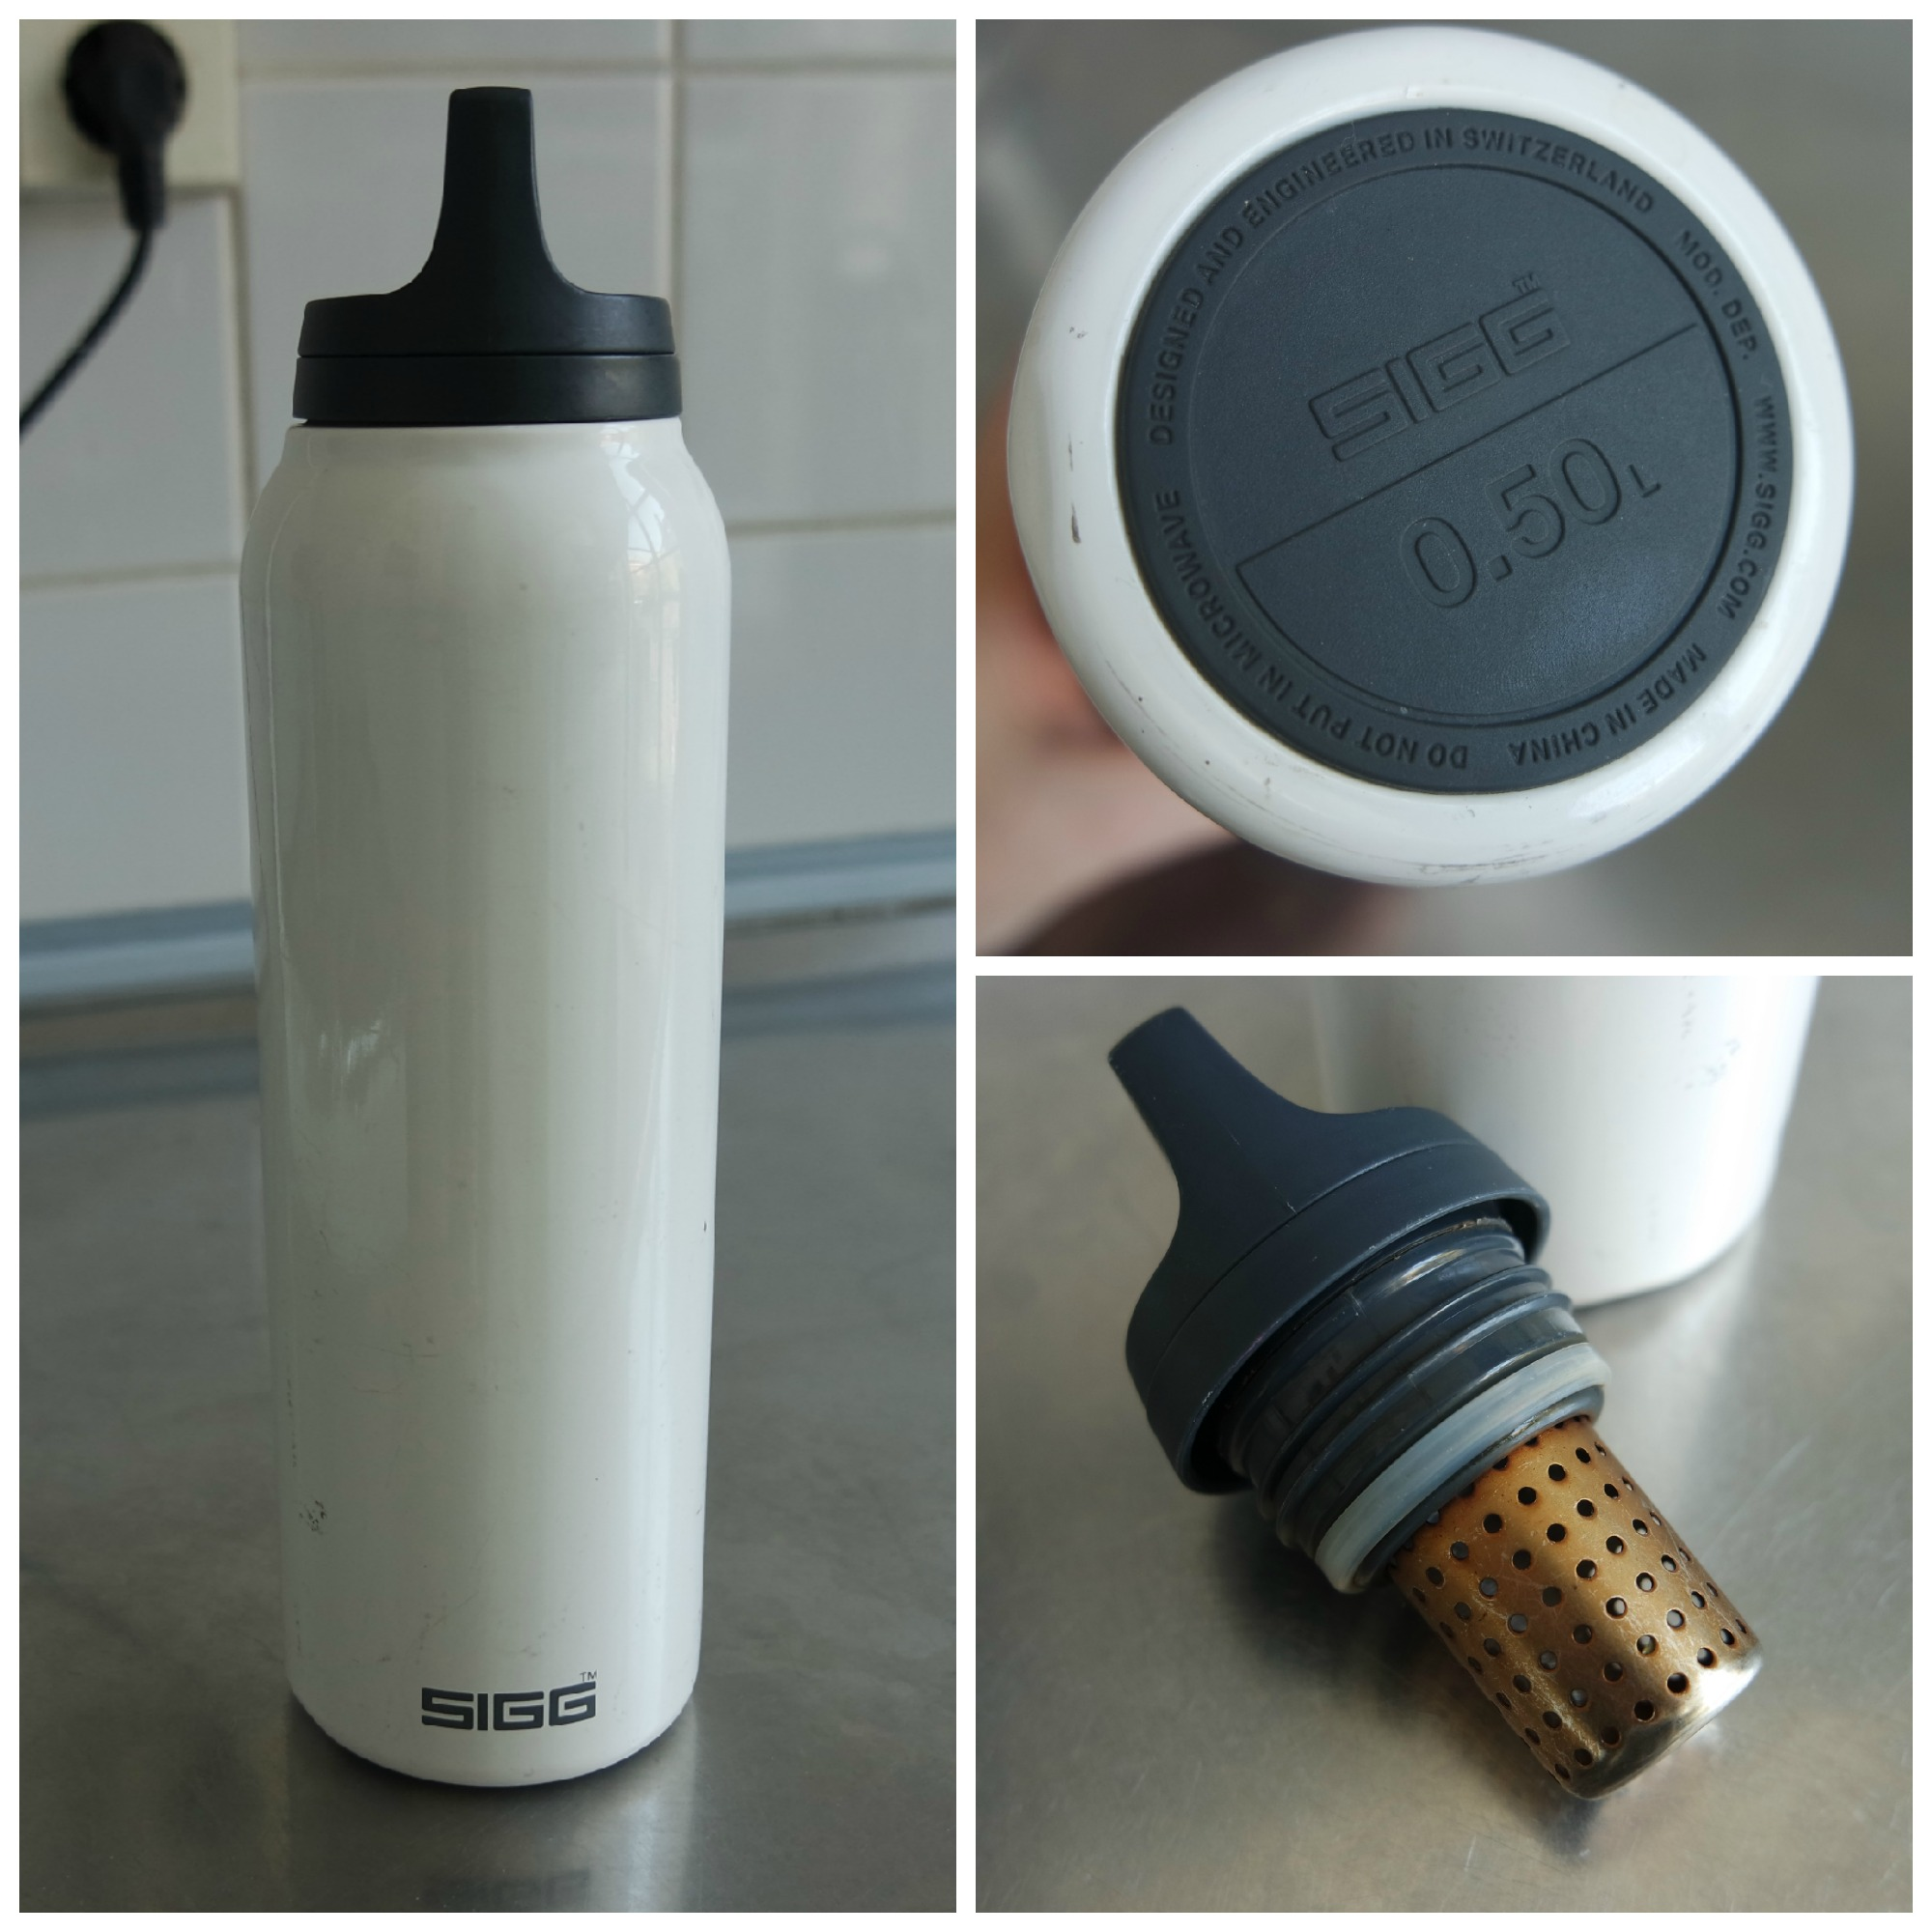 SIGG Hot & Cold mug 500 ml thermos classic with tea filter